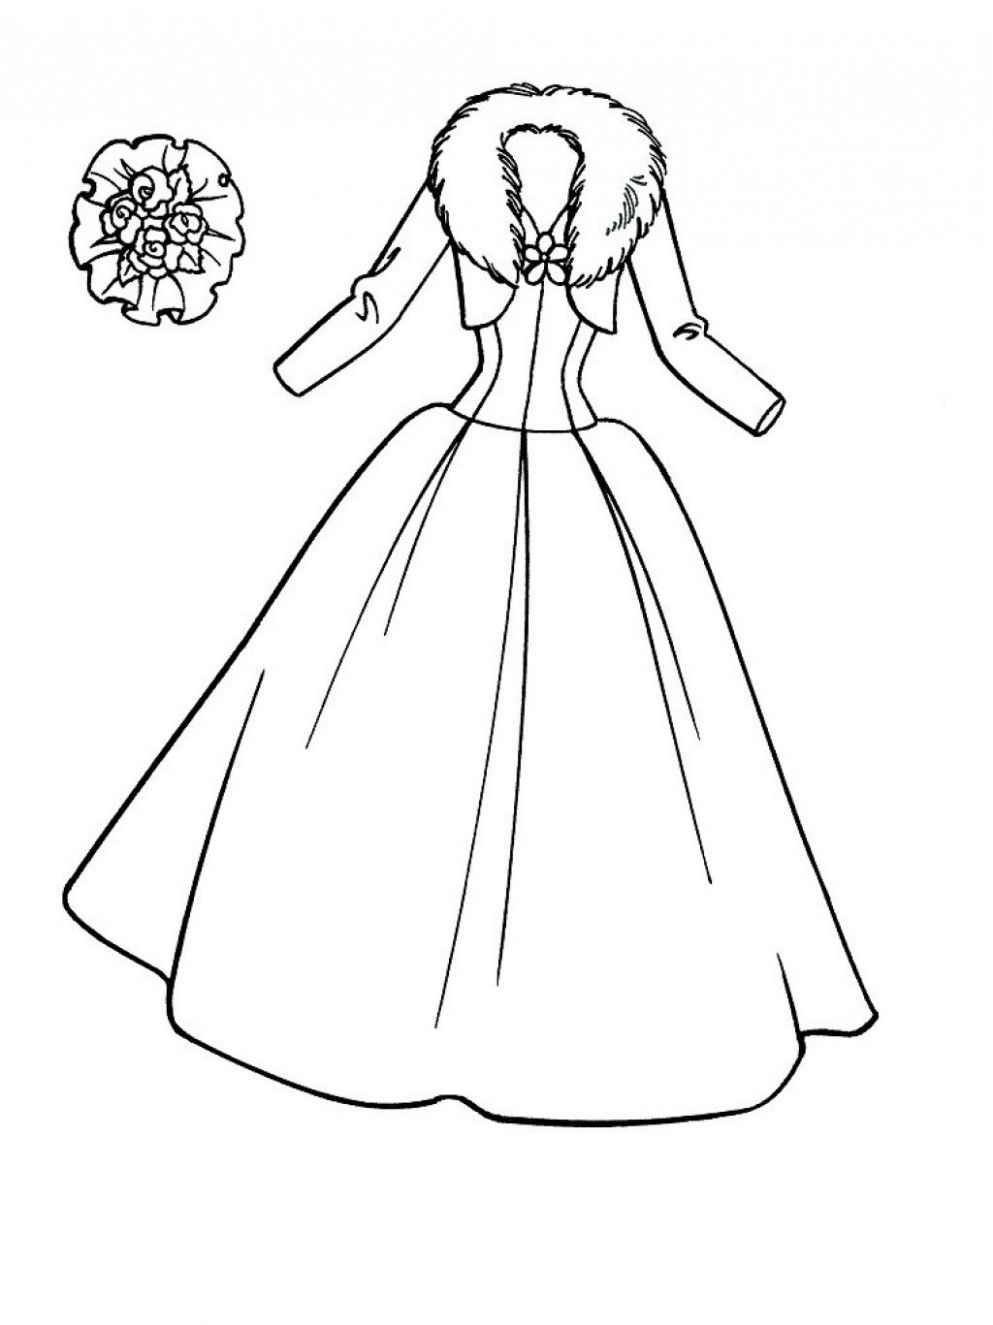 15 Common Mistakes Everyone Makes In Coloring Pages Printable Dress Coloring Coloring Pages Disney Coloring Pages Coloring Pages For Girls